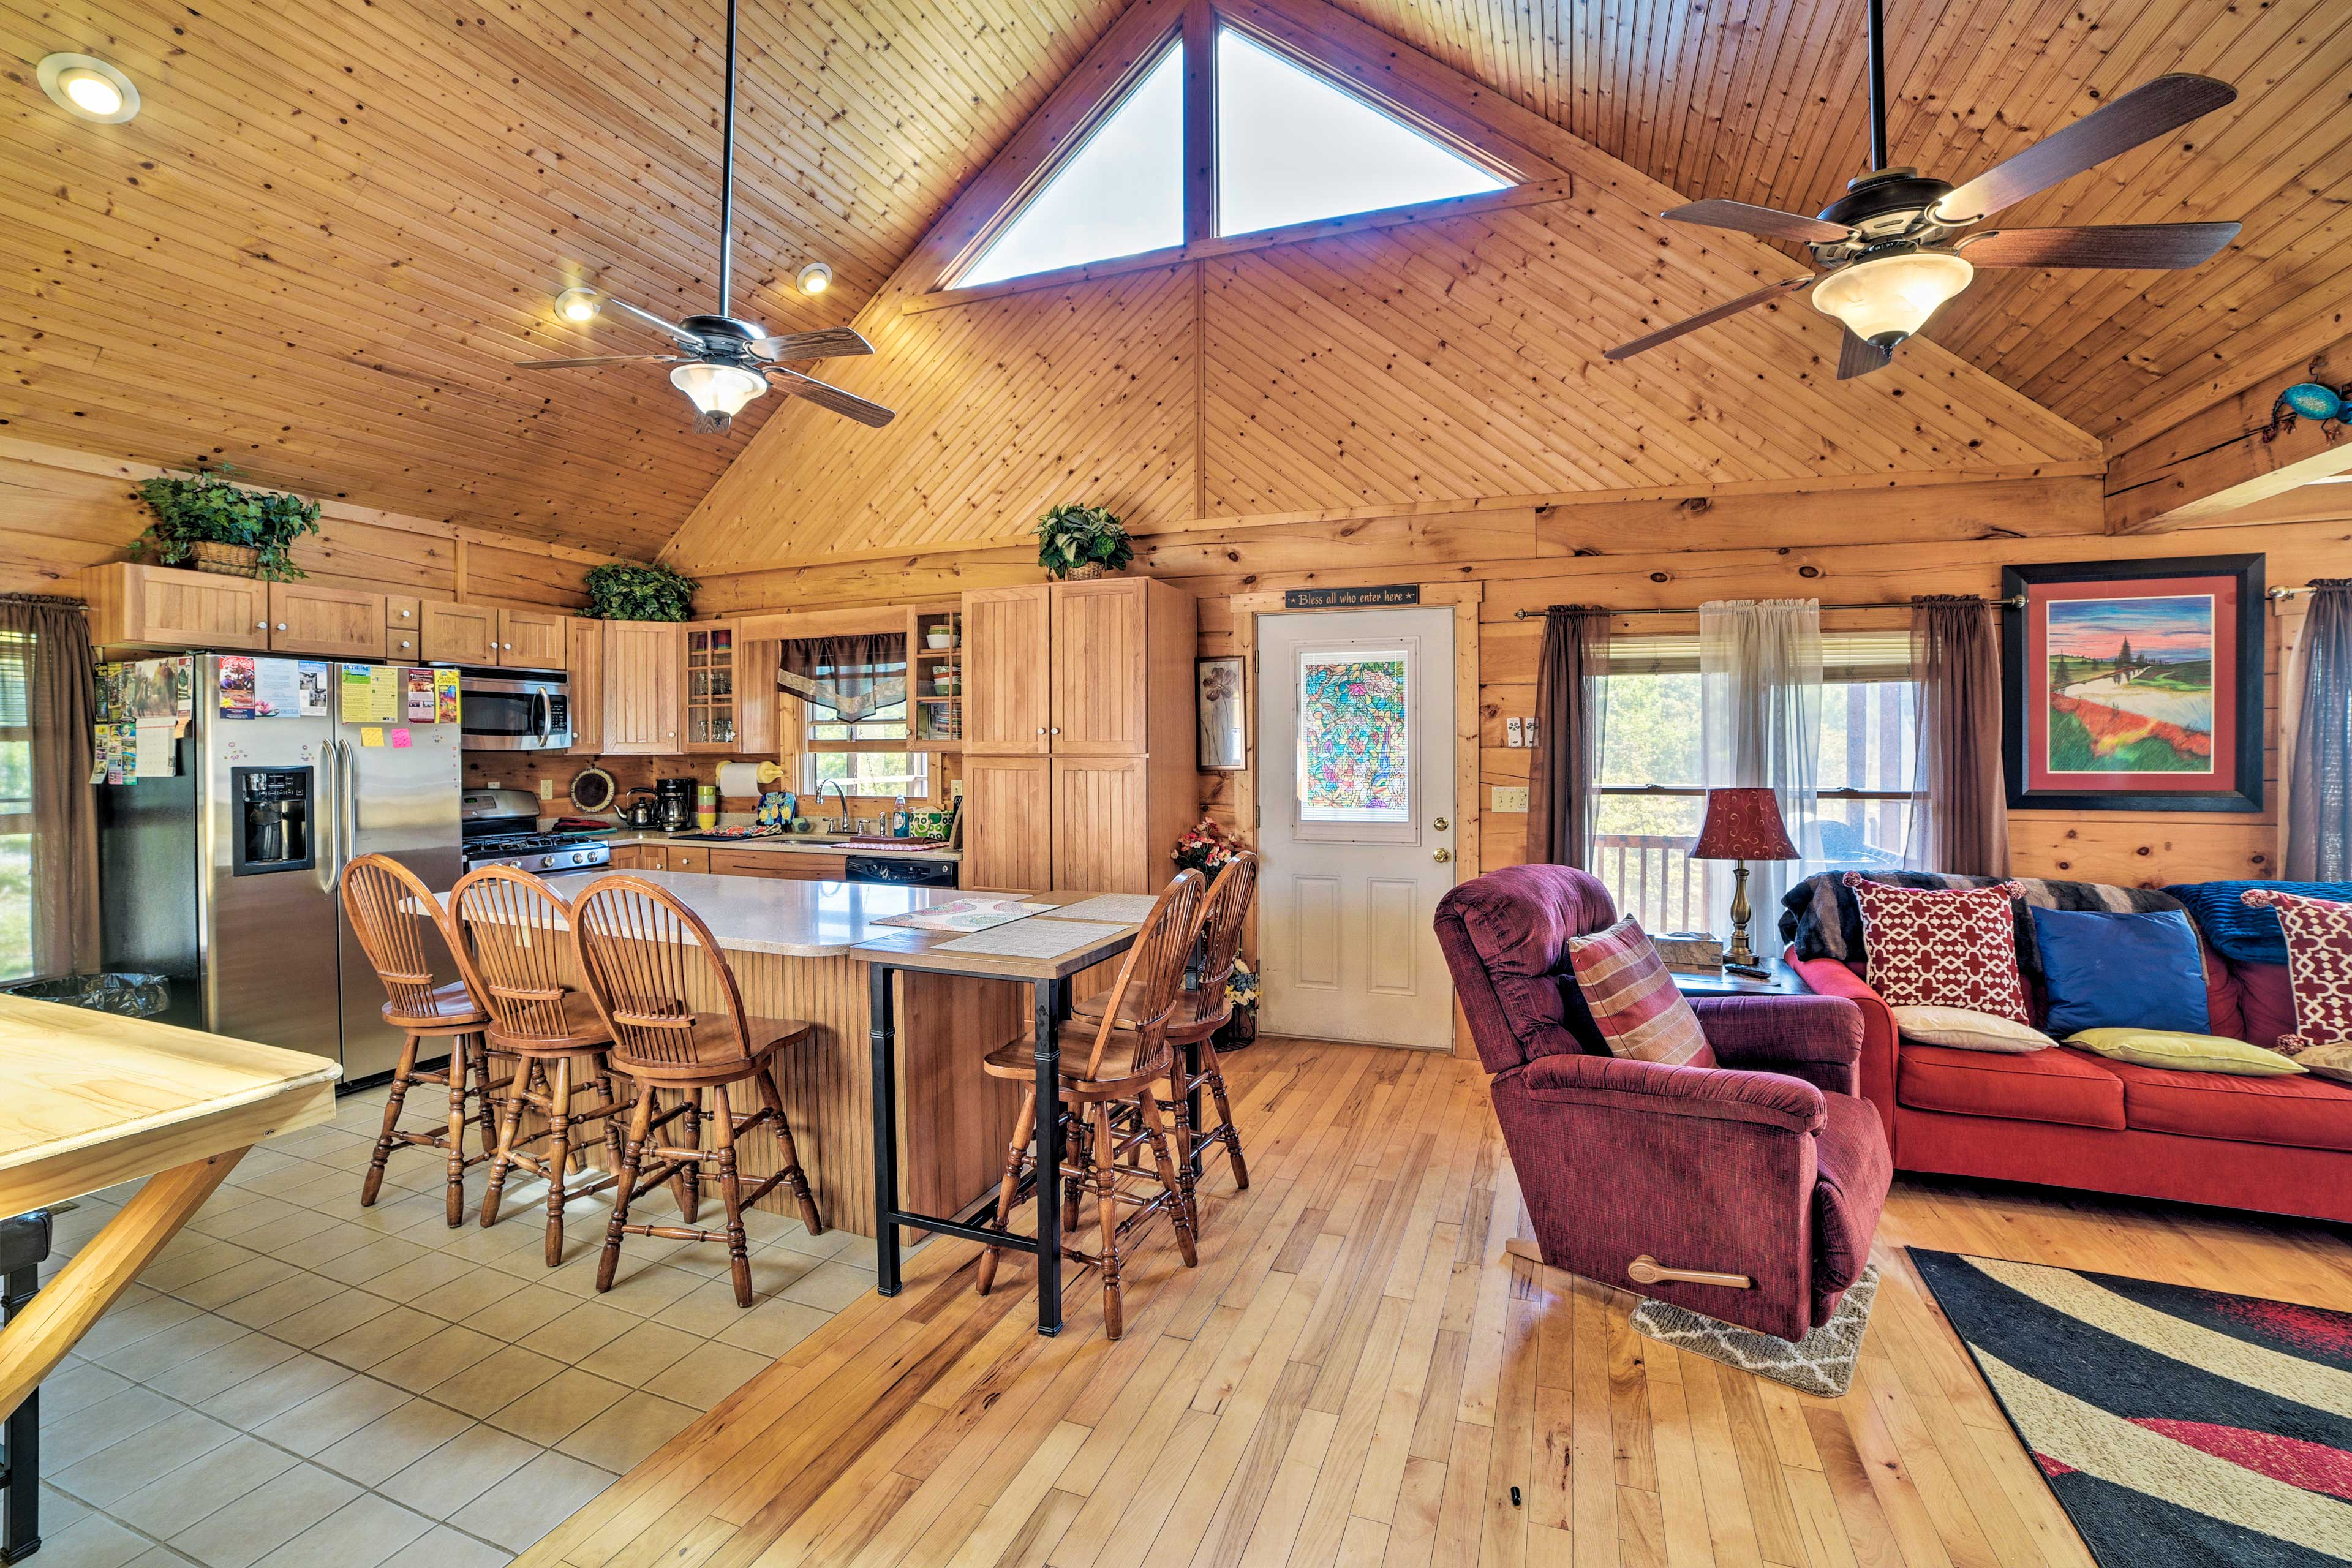 With elevated ceilings, this cabin feels very roomy.